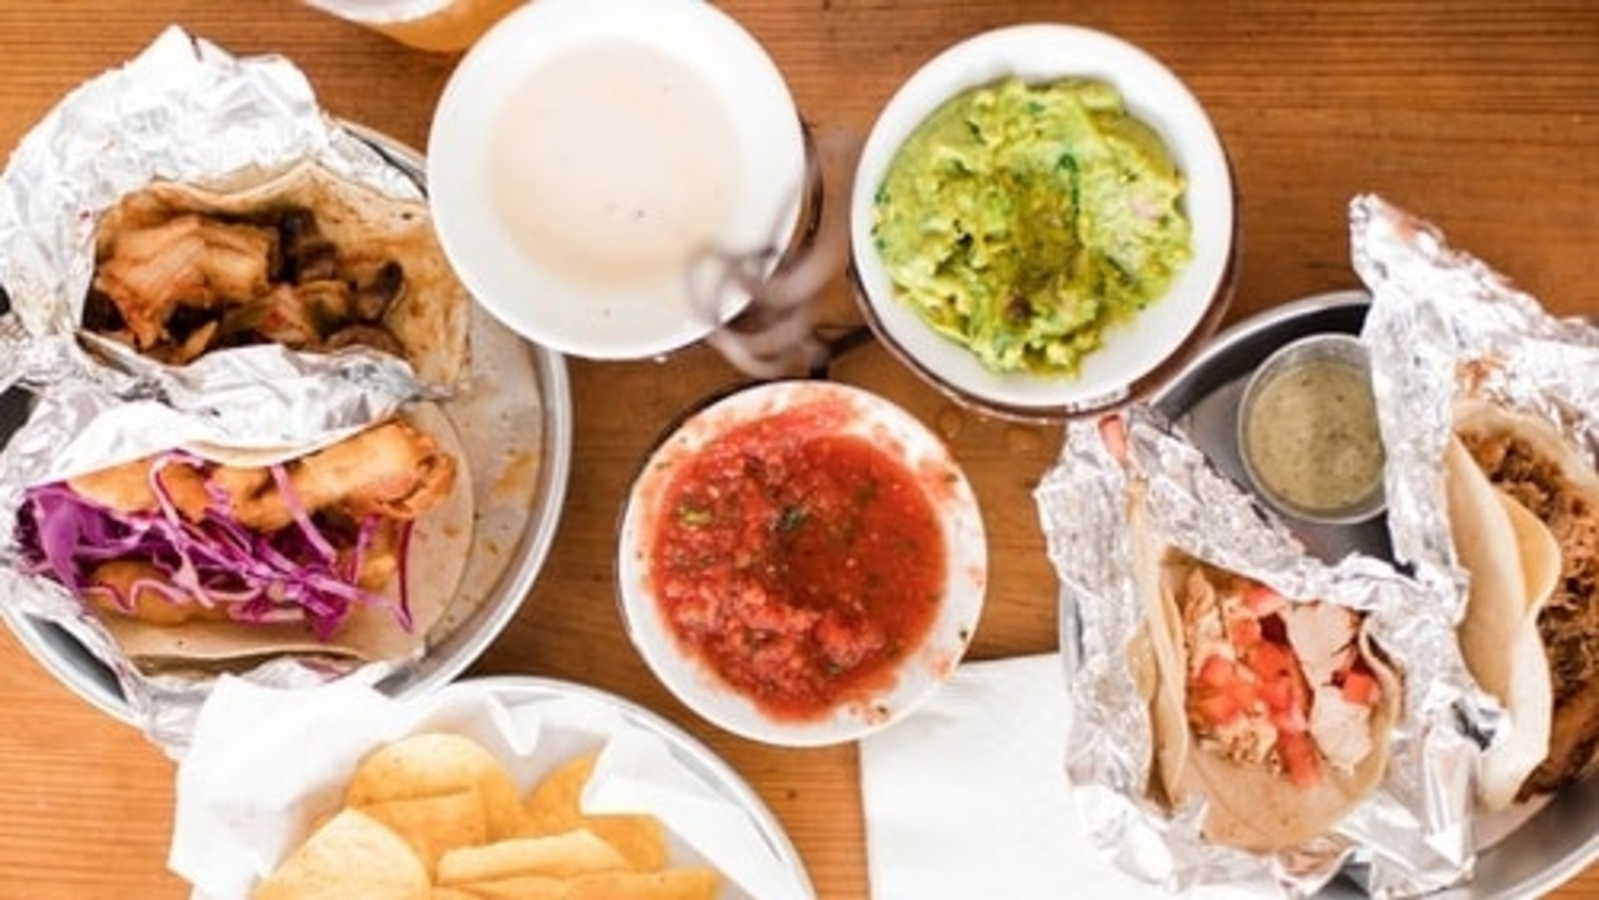 Recipe: Add some exotic flavours to your meal with guacamole and pico da gallo